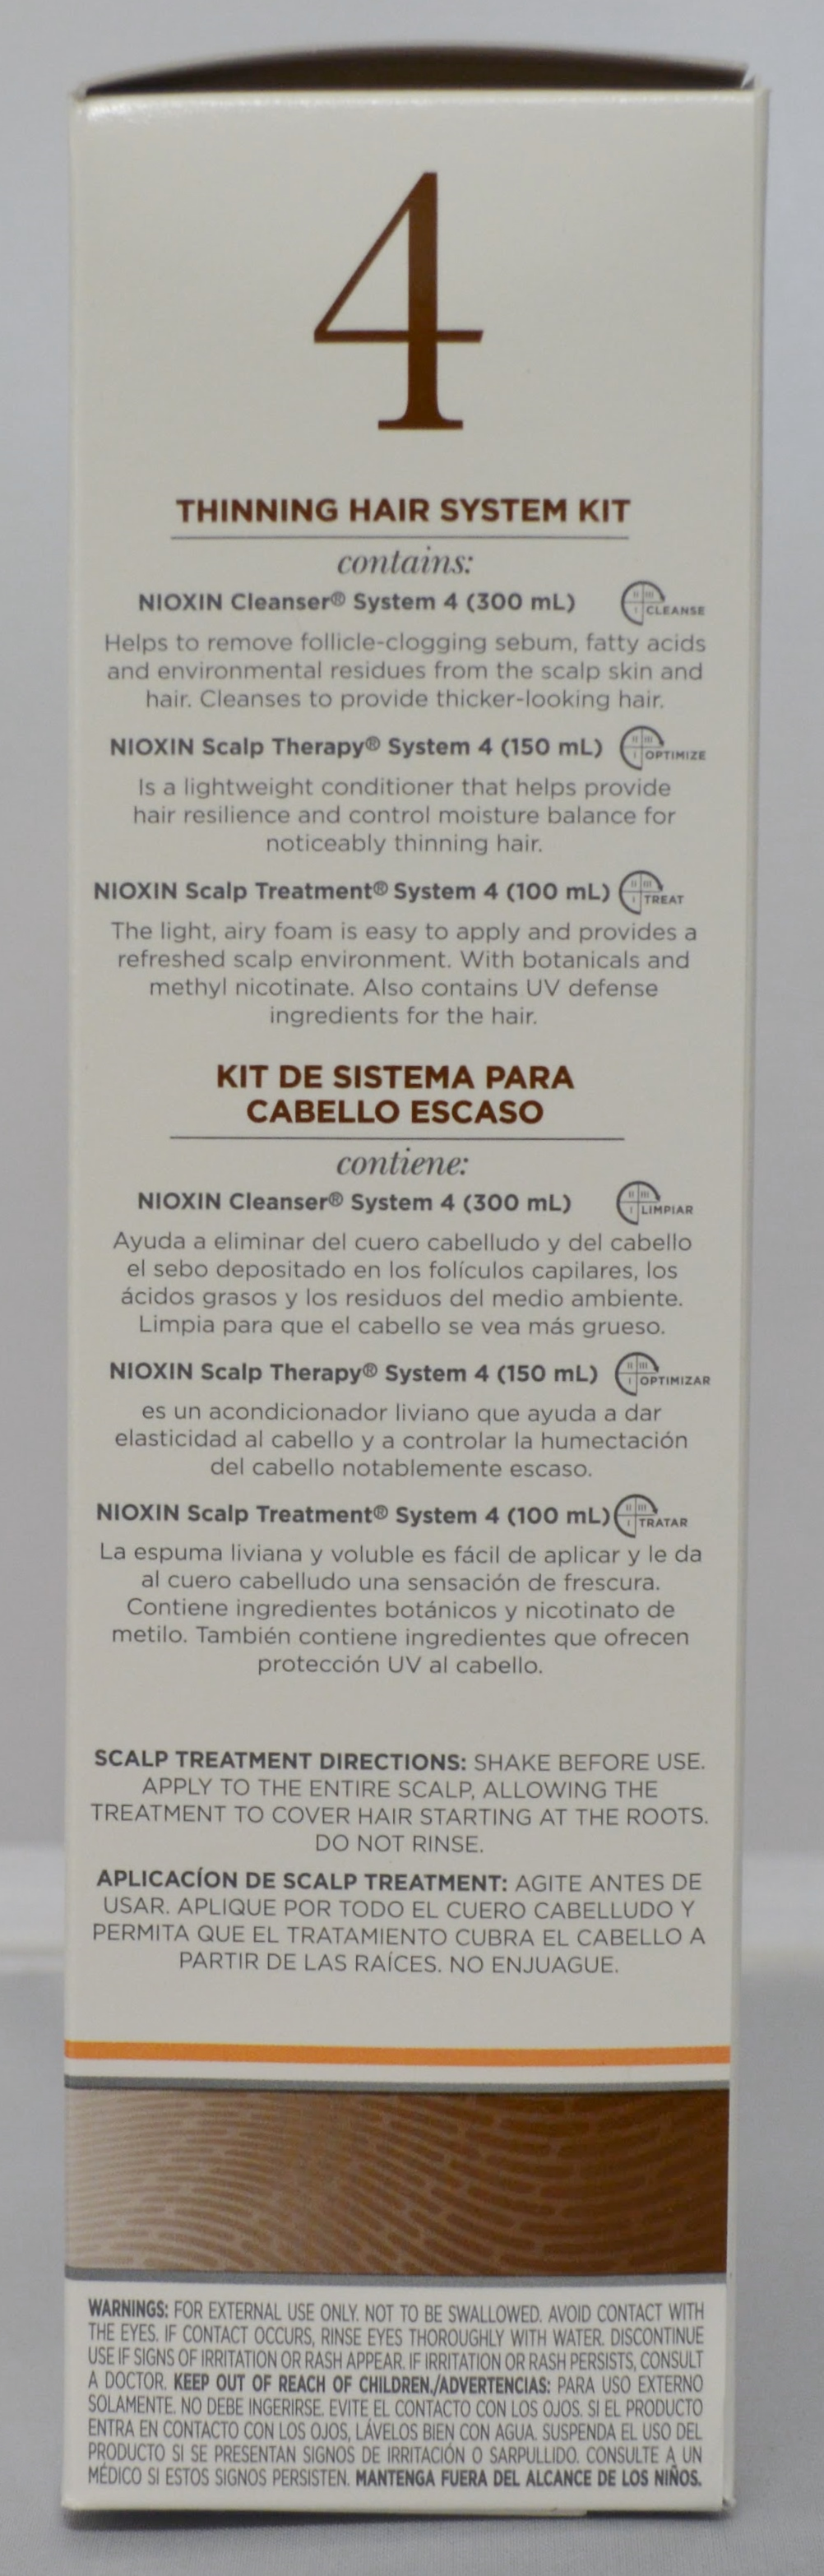 Nioxin System 4 Cleanser Scalp Therapy Scalp Treatment